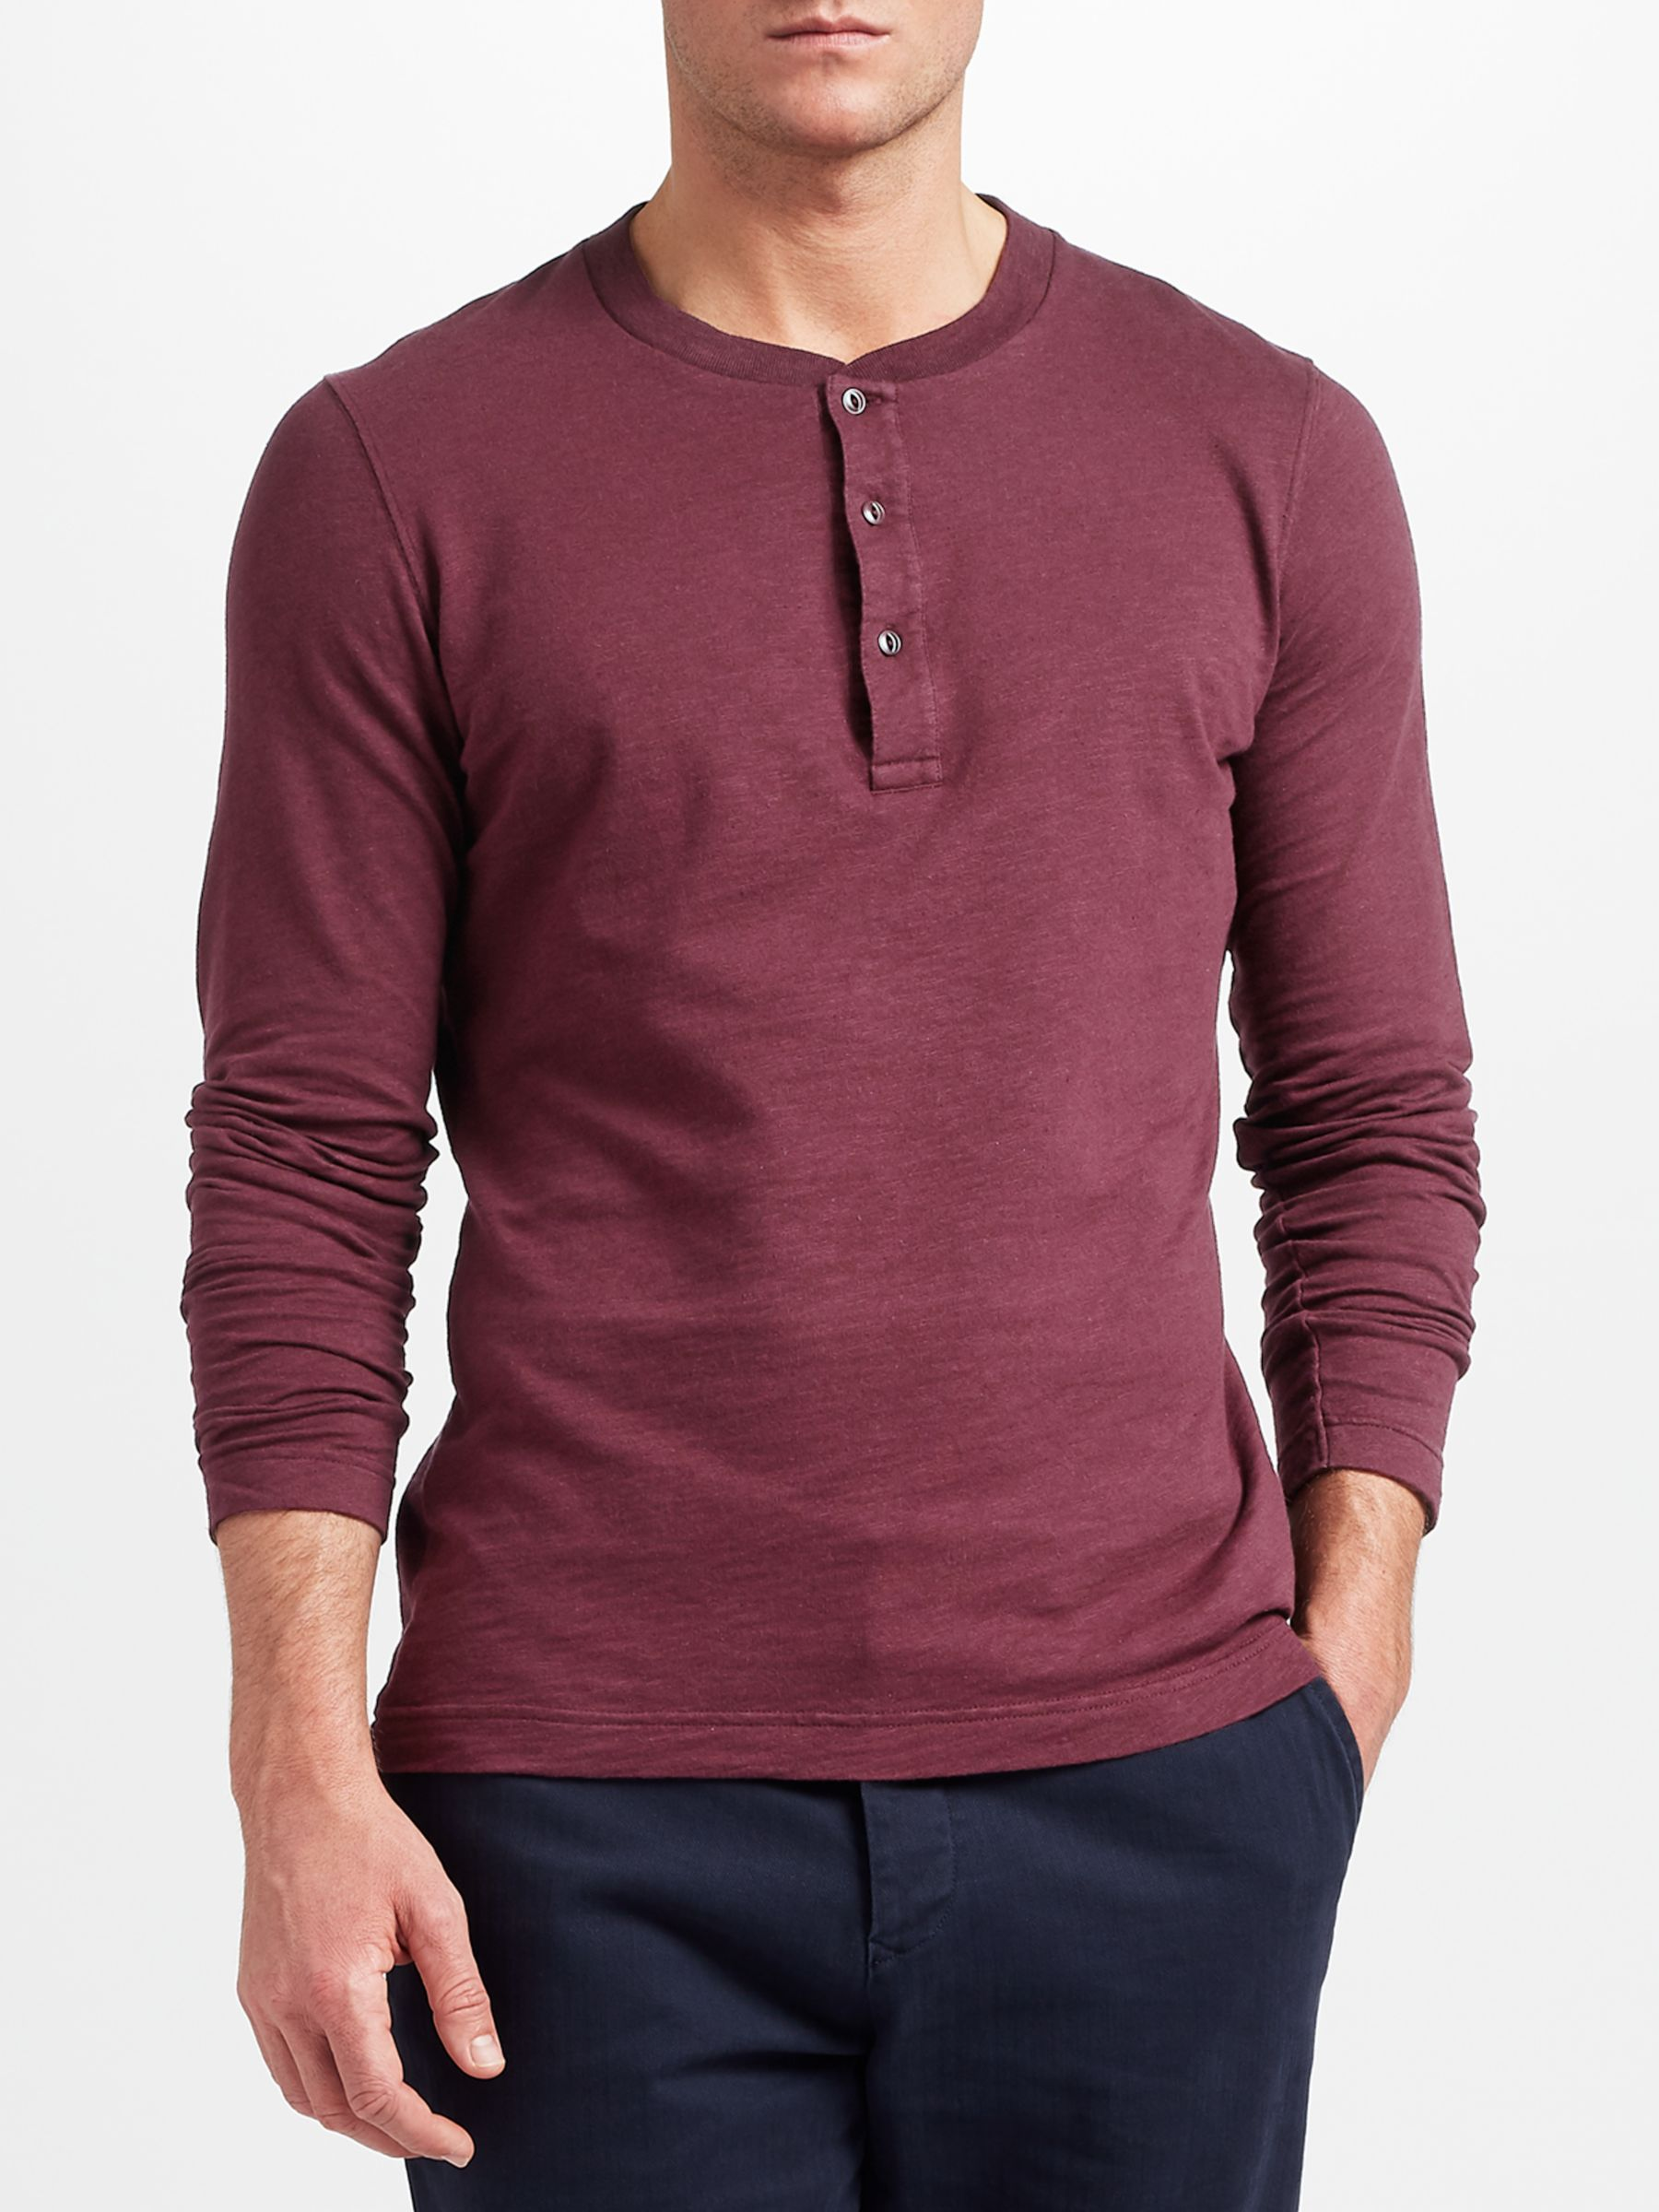 mens henley t shirt uk